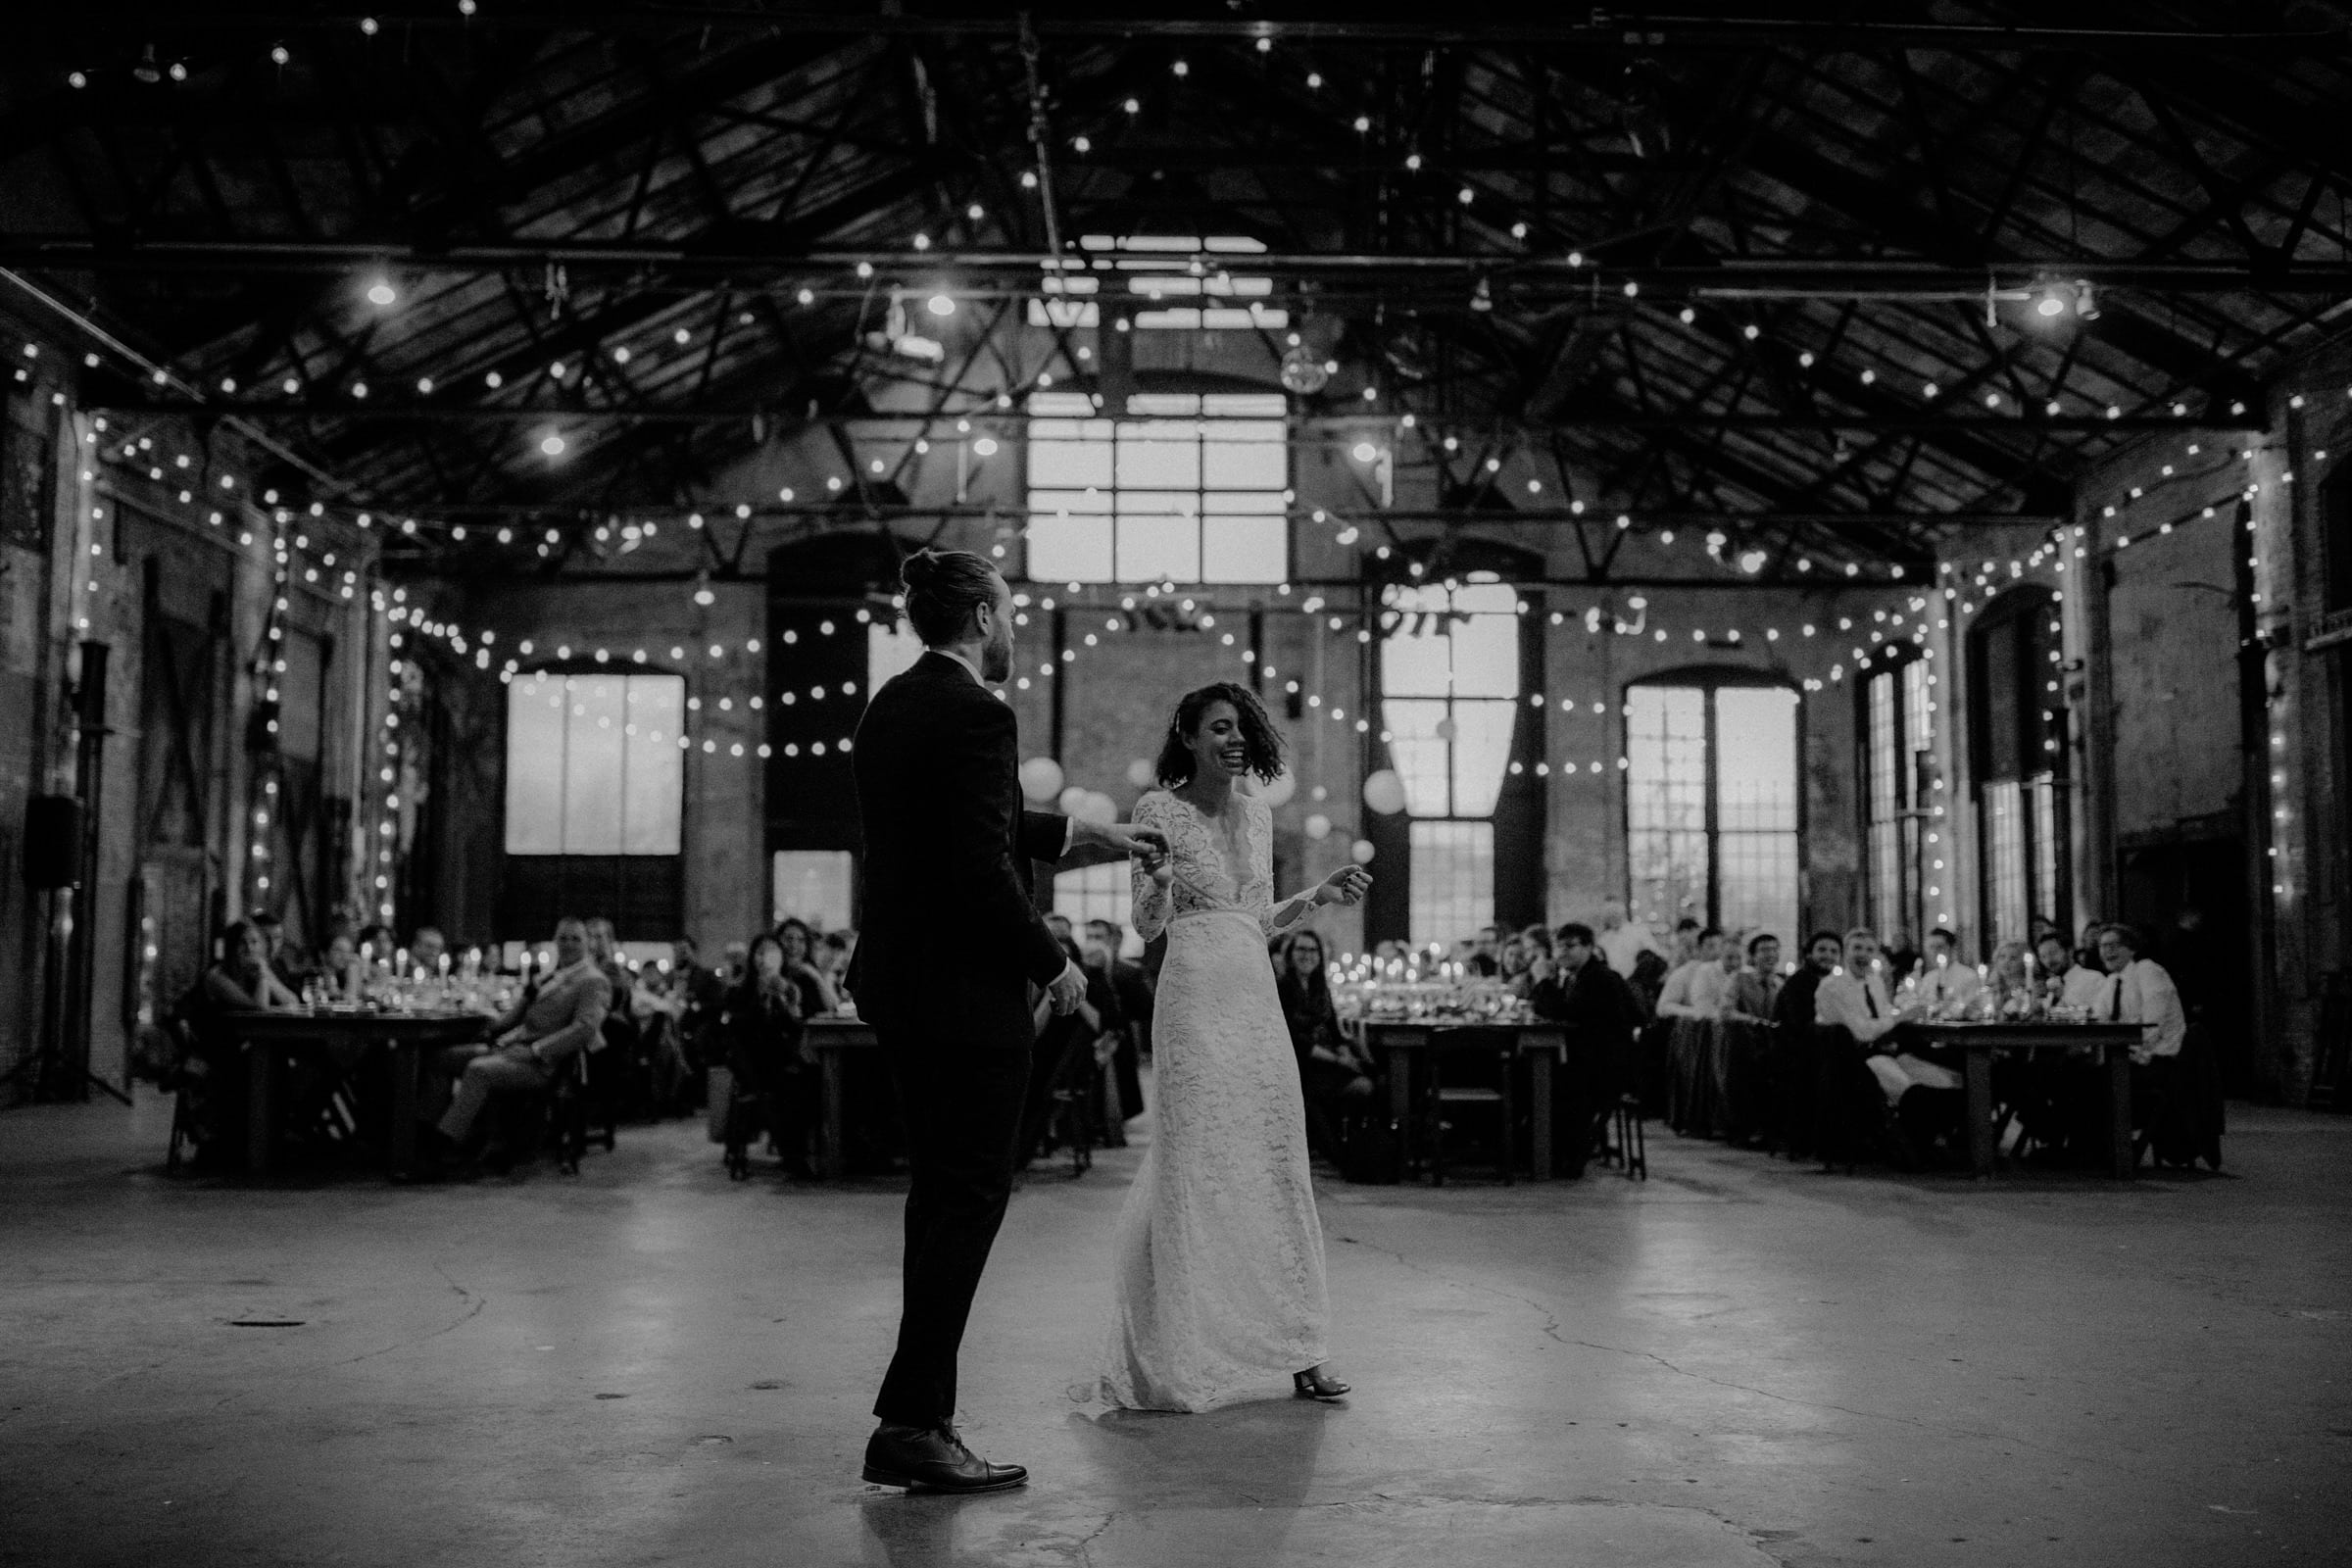 The wedding couple is about to dance in a big industrial hall.